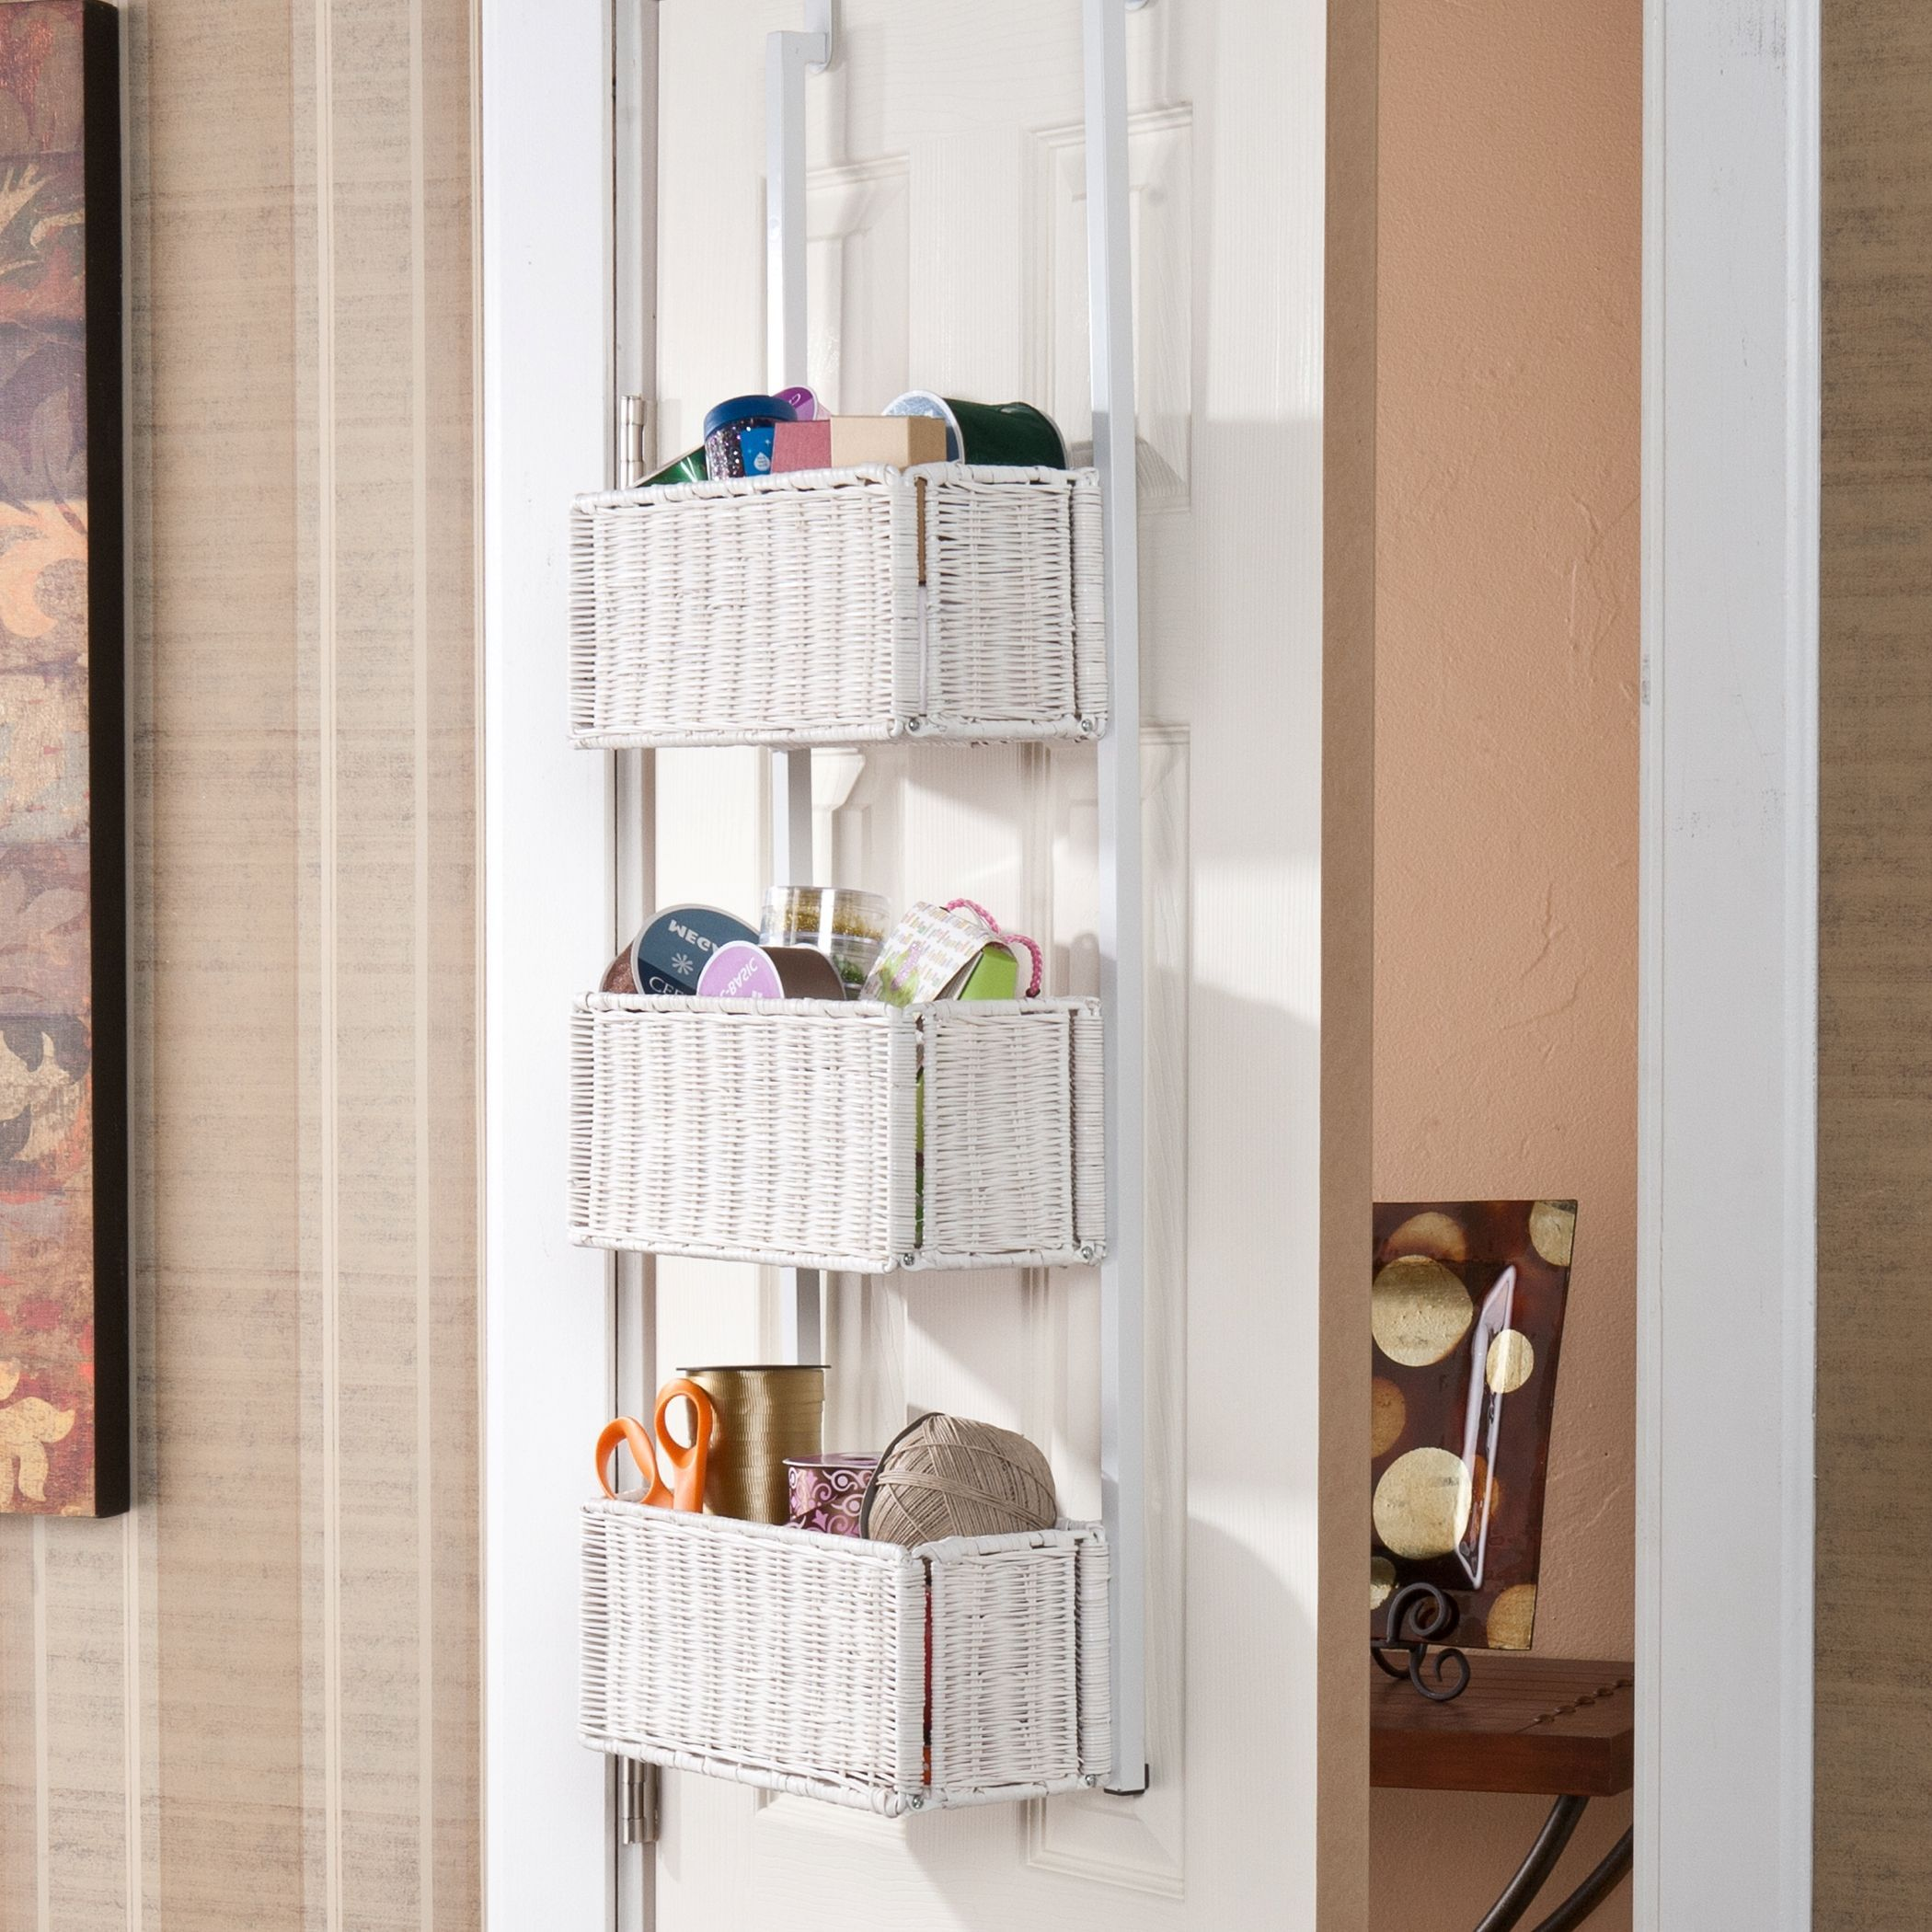 Add functional style to your room with this white-rattan, three-tier basket. Featuring over-door hooks to hang comfortably over most doors, this basket storage is perfect for organizing your belongings to help keep clutter to a minimum.